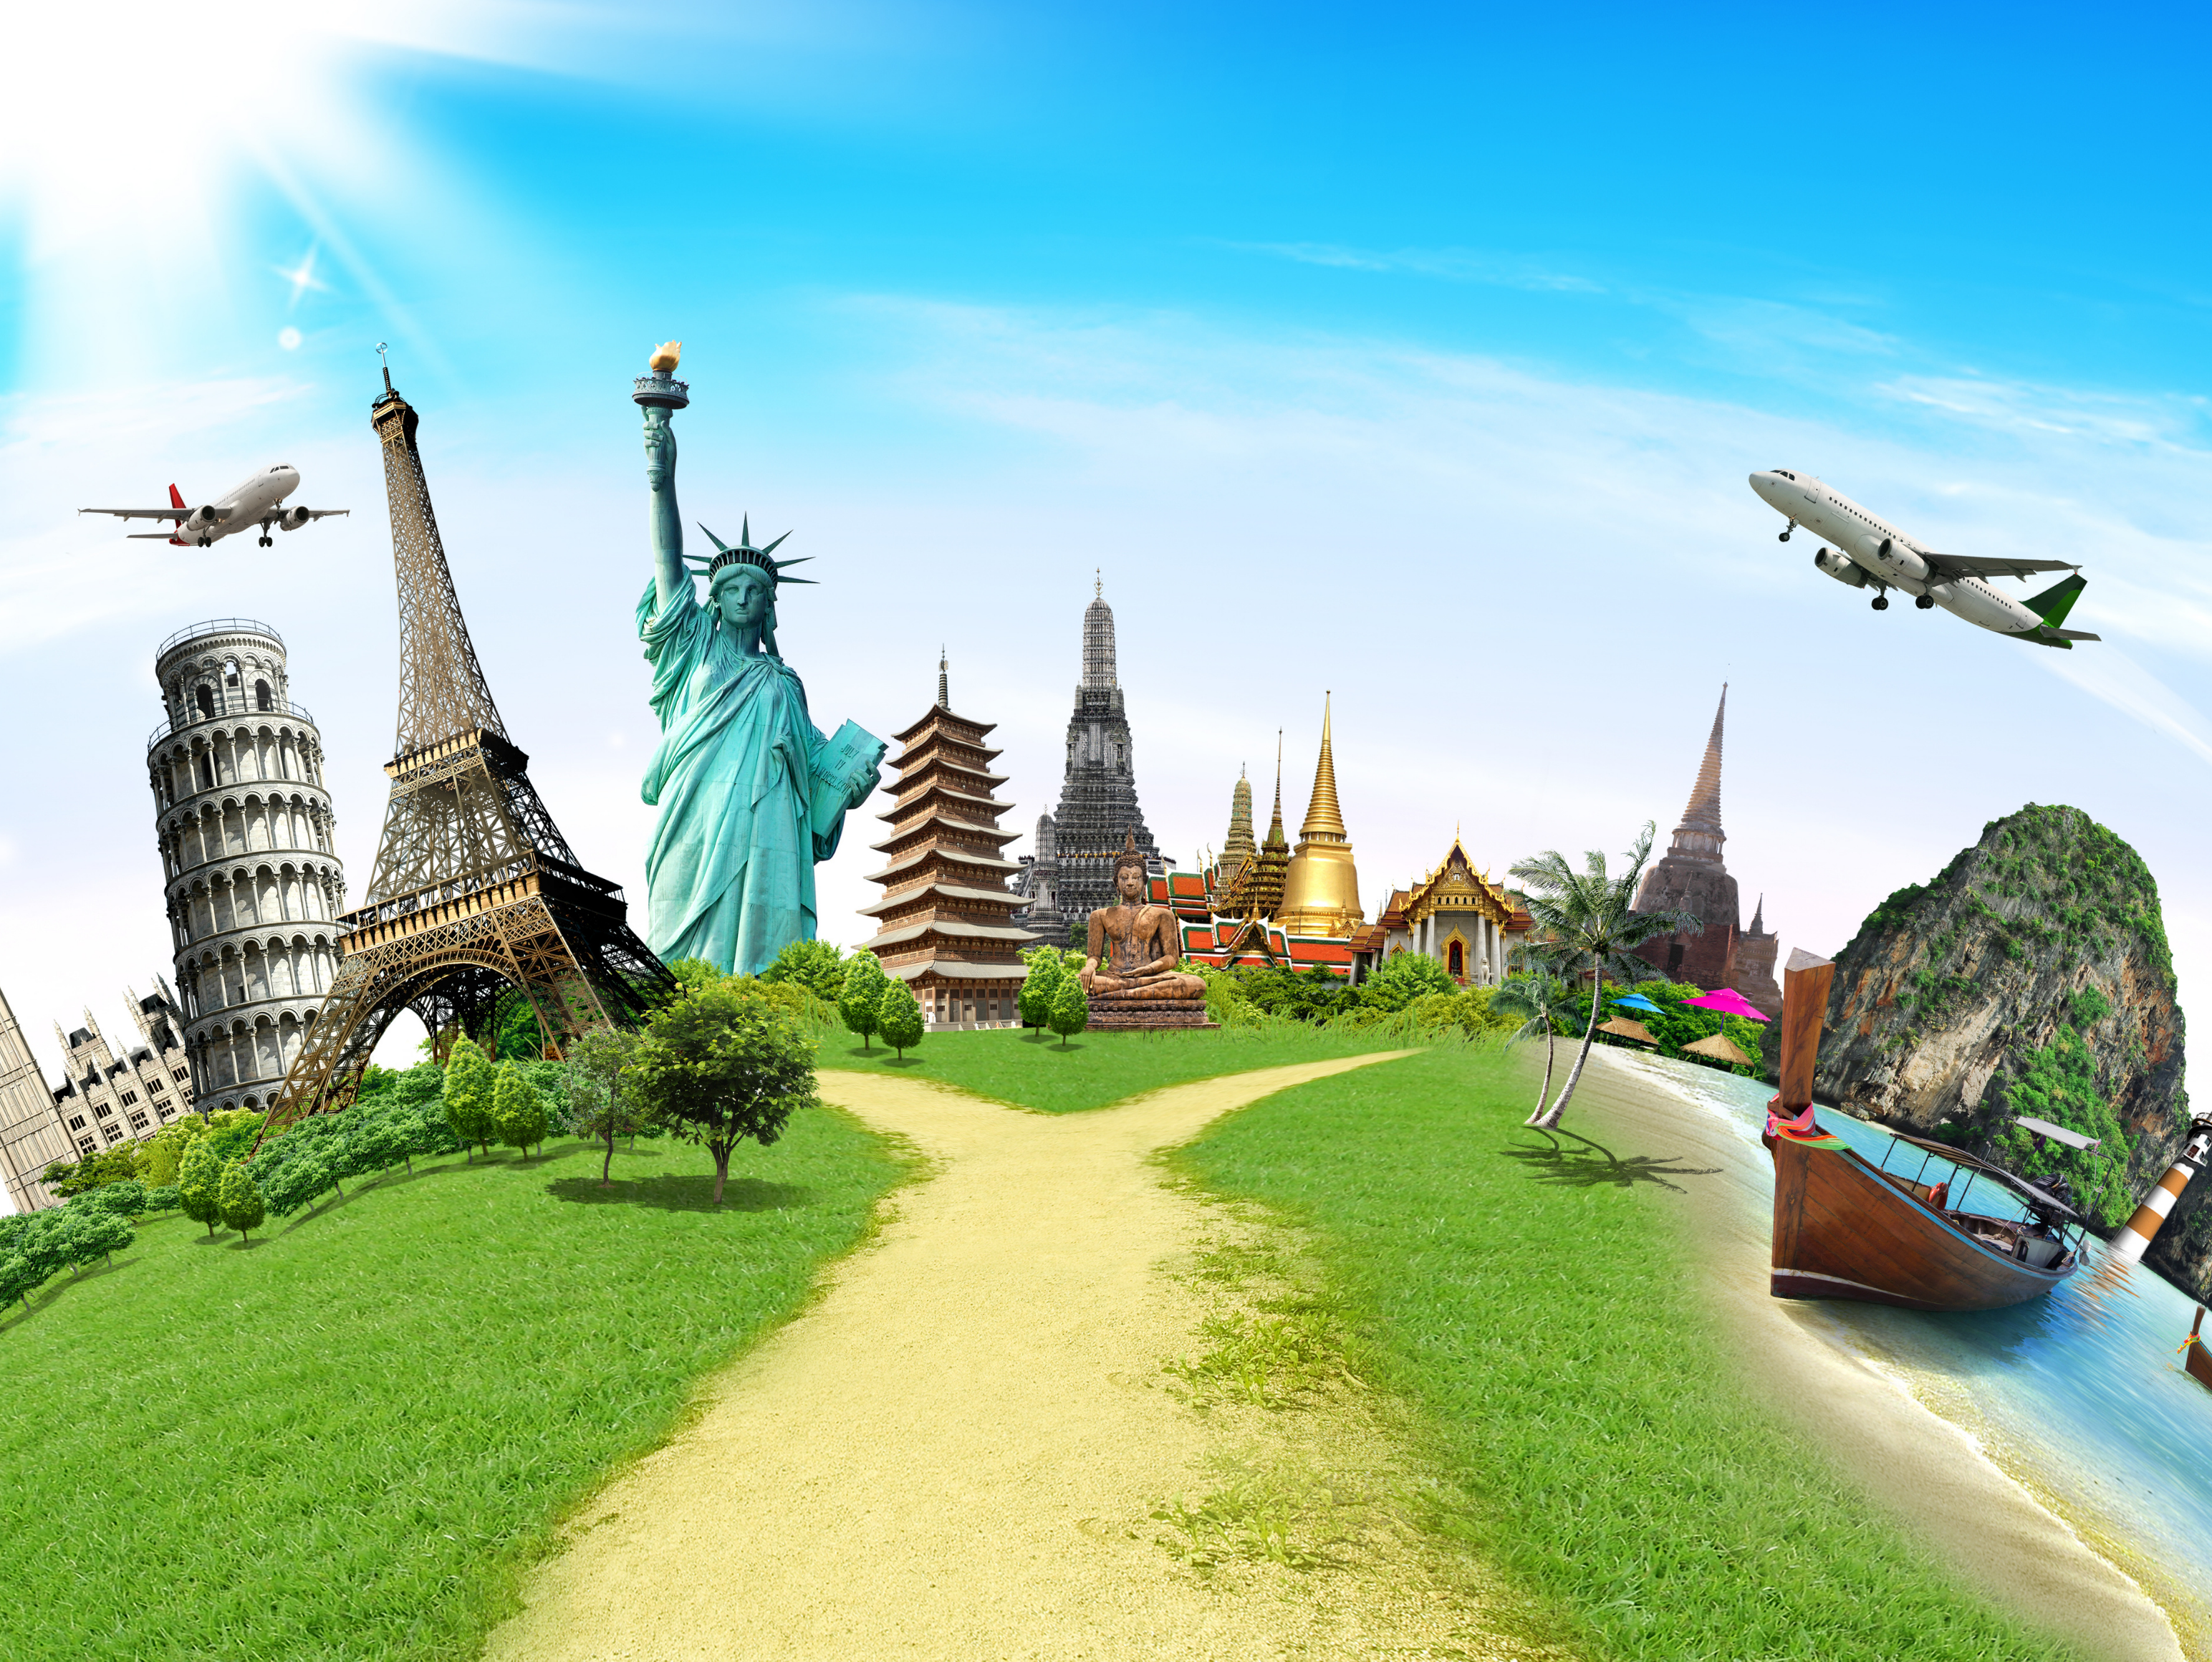 How To Travel The World On $20 Per Day - Travepreneur